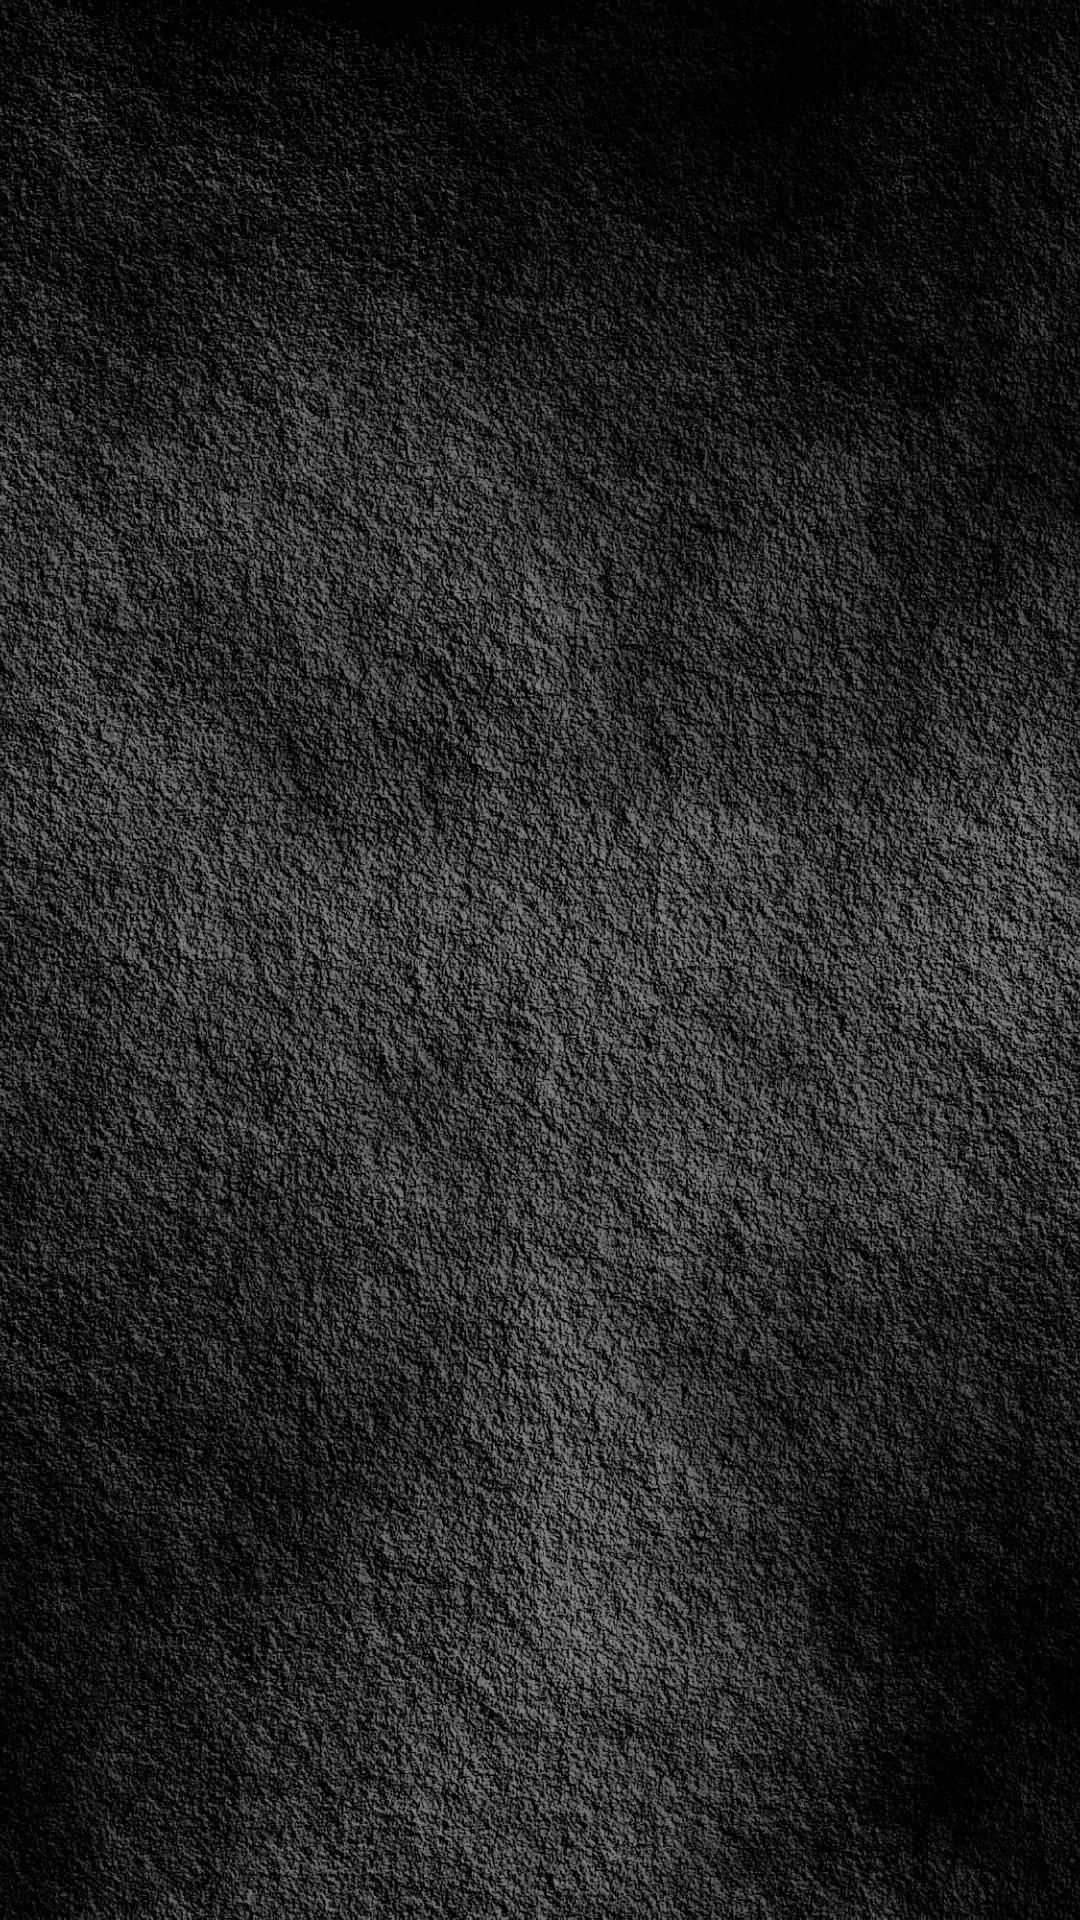 black rock texture mobile background